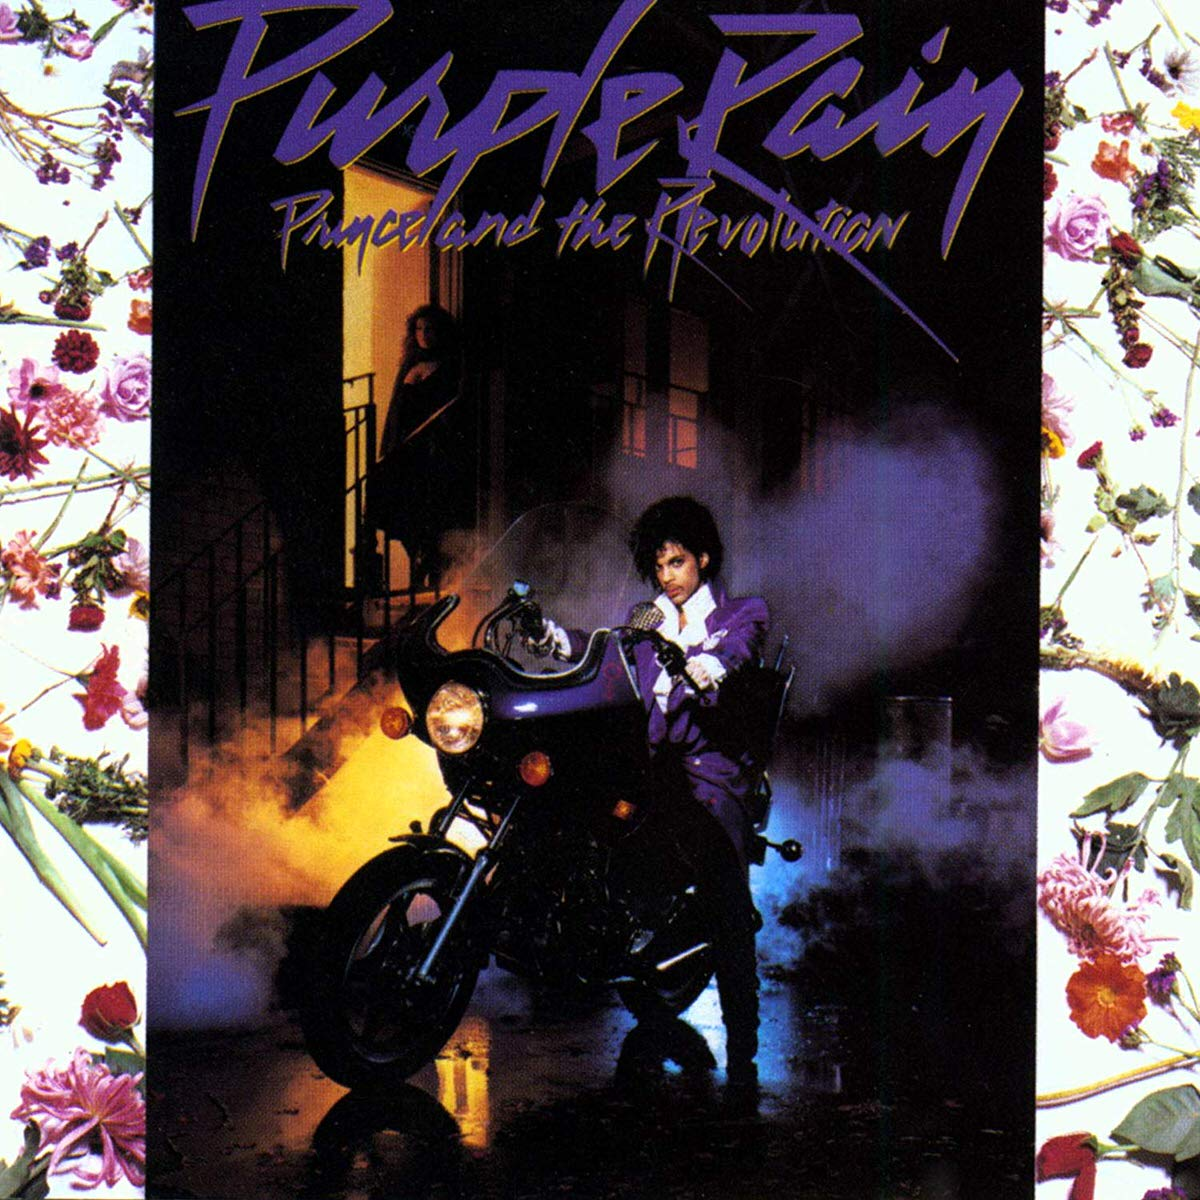 Album cover for Purple Rain by Prince and the Revolution LP